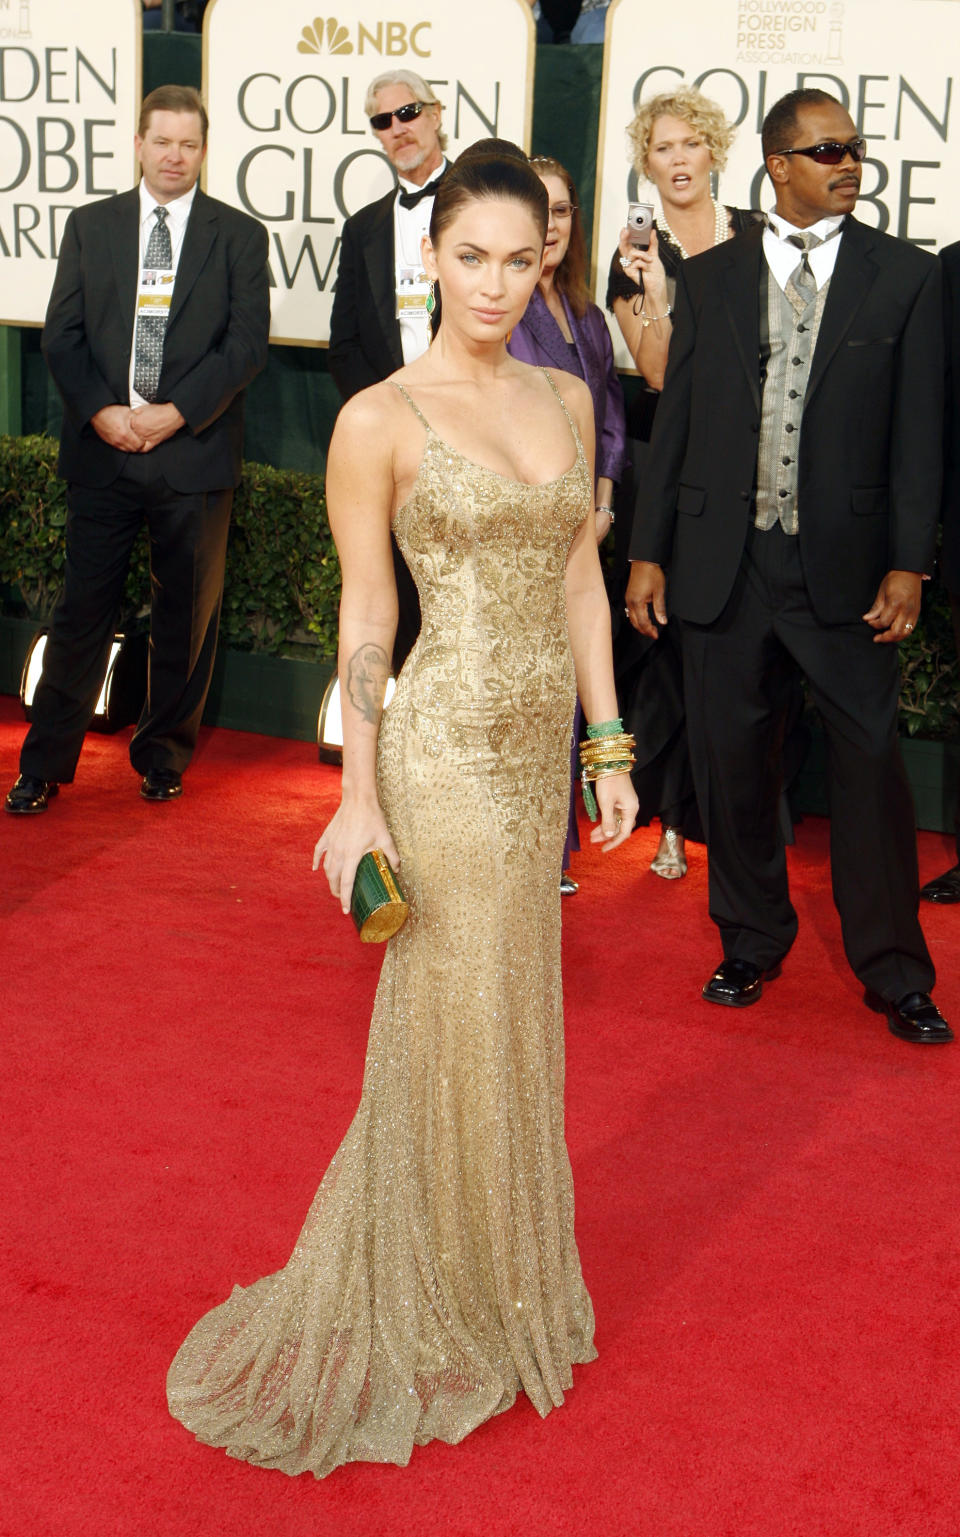 Actress Megan Fox arrives at the 66th annual Golden Globe awards in Beverly Hills, California January 11, 2009.     REUTERS/Lucas Jackson (UNITED STATES)